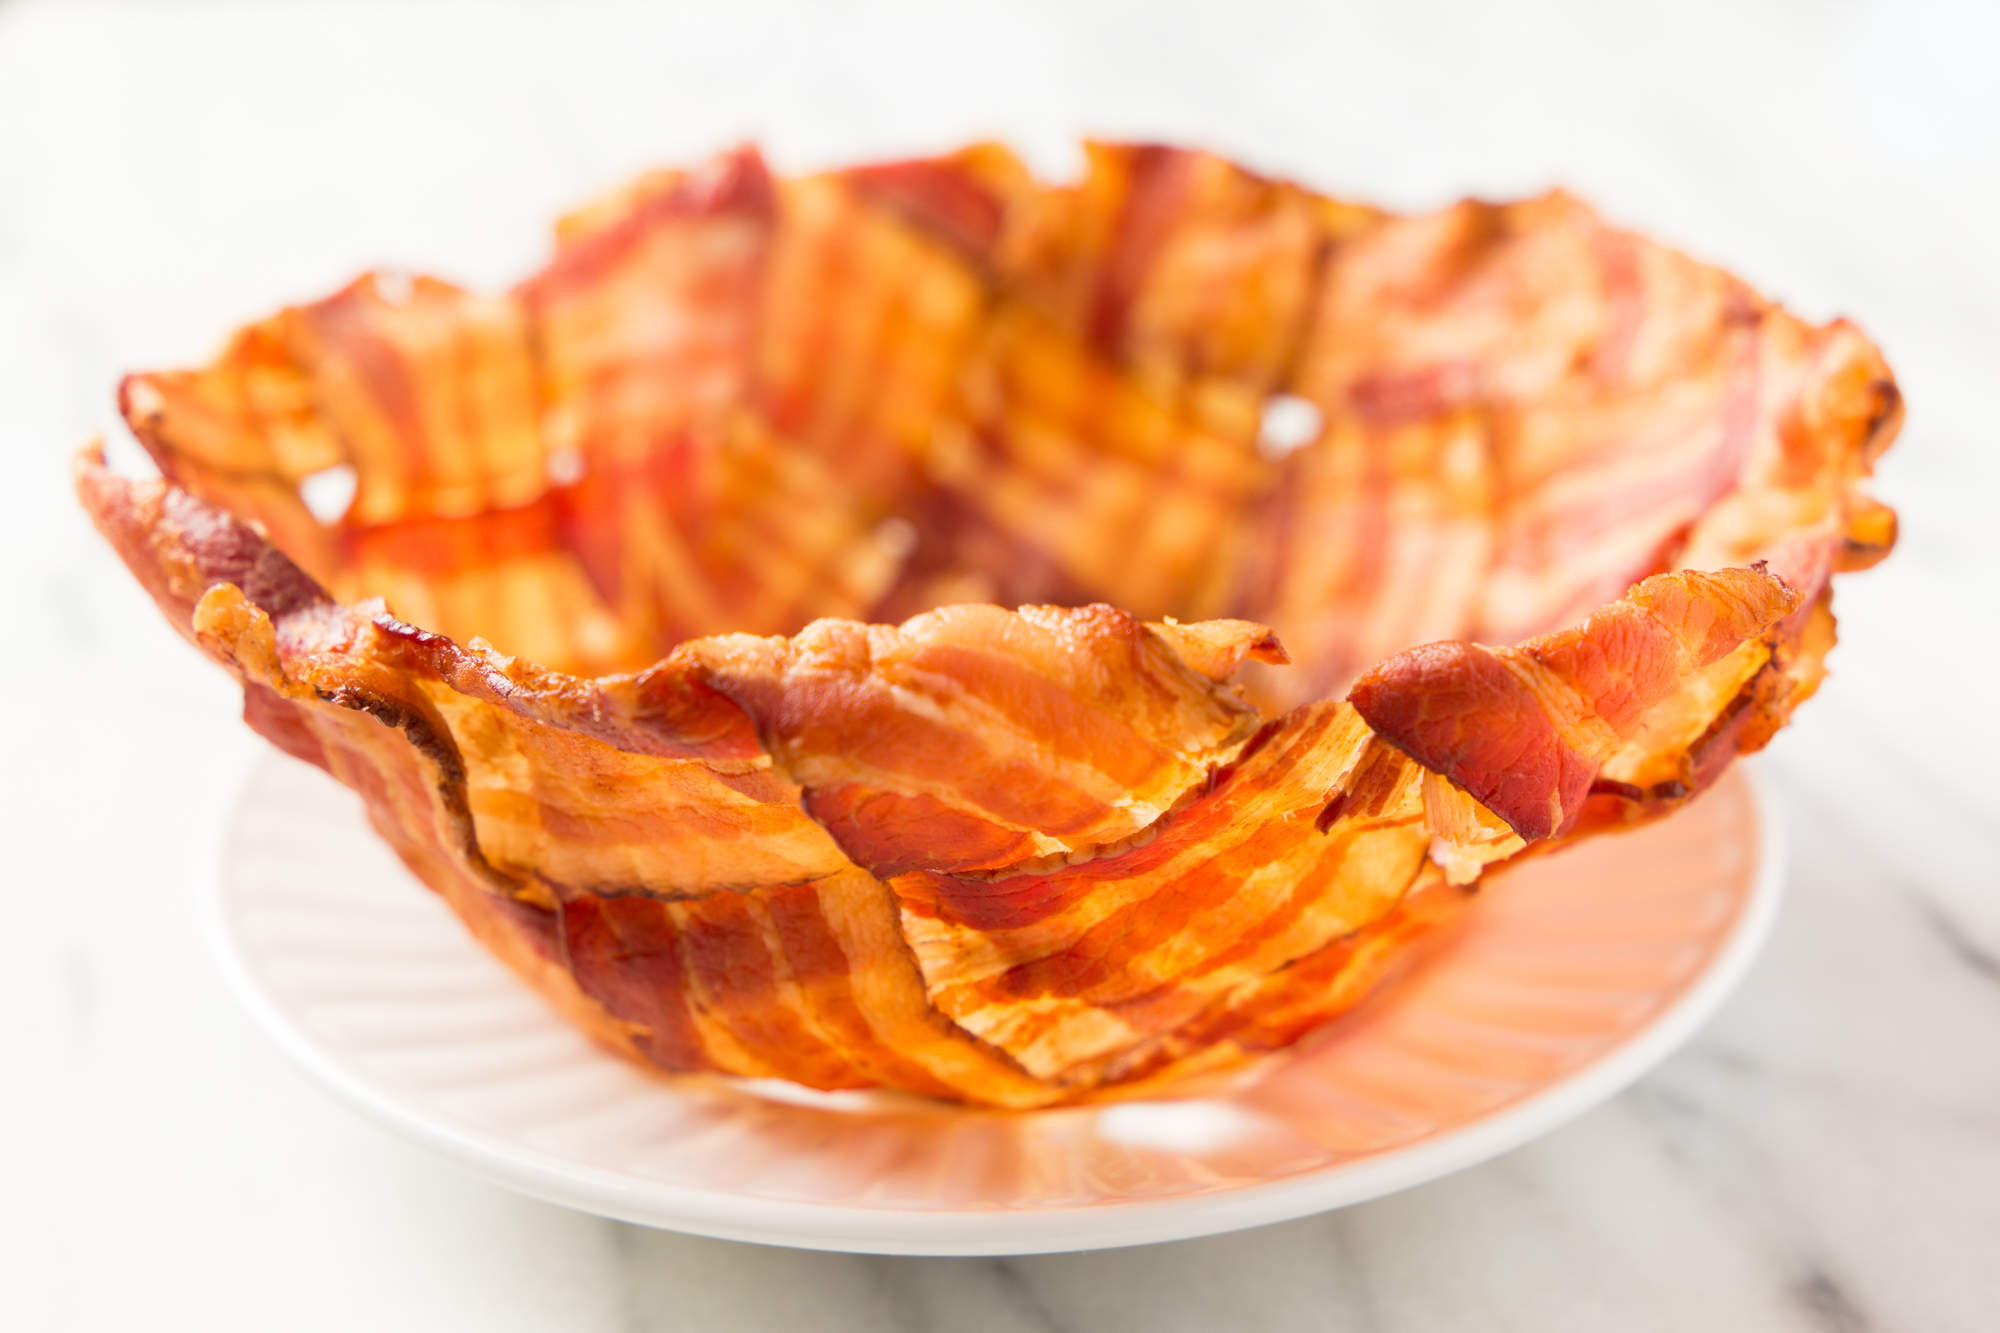 How to Make the Bacon Bowl You Never Realized You Needed... To Eat